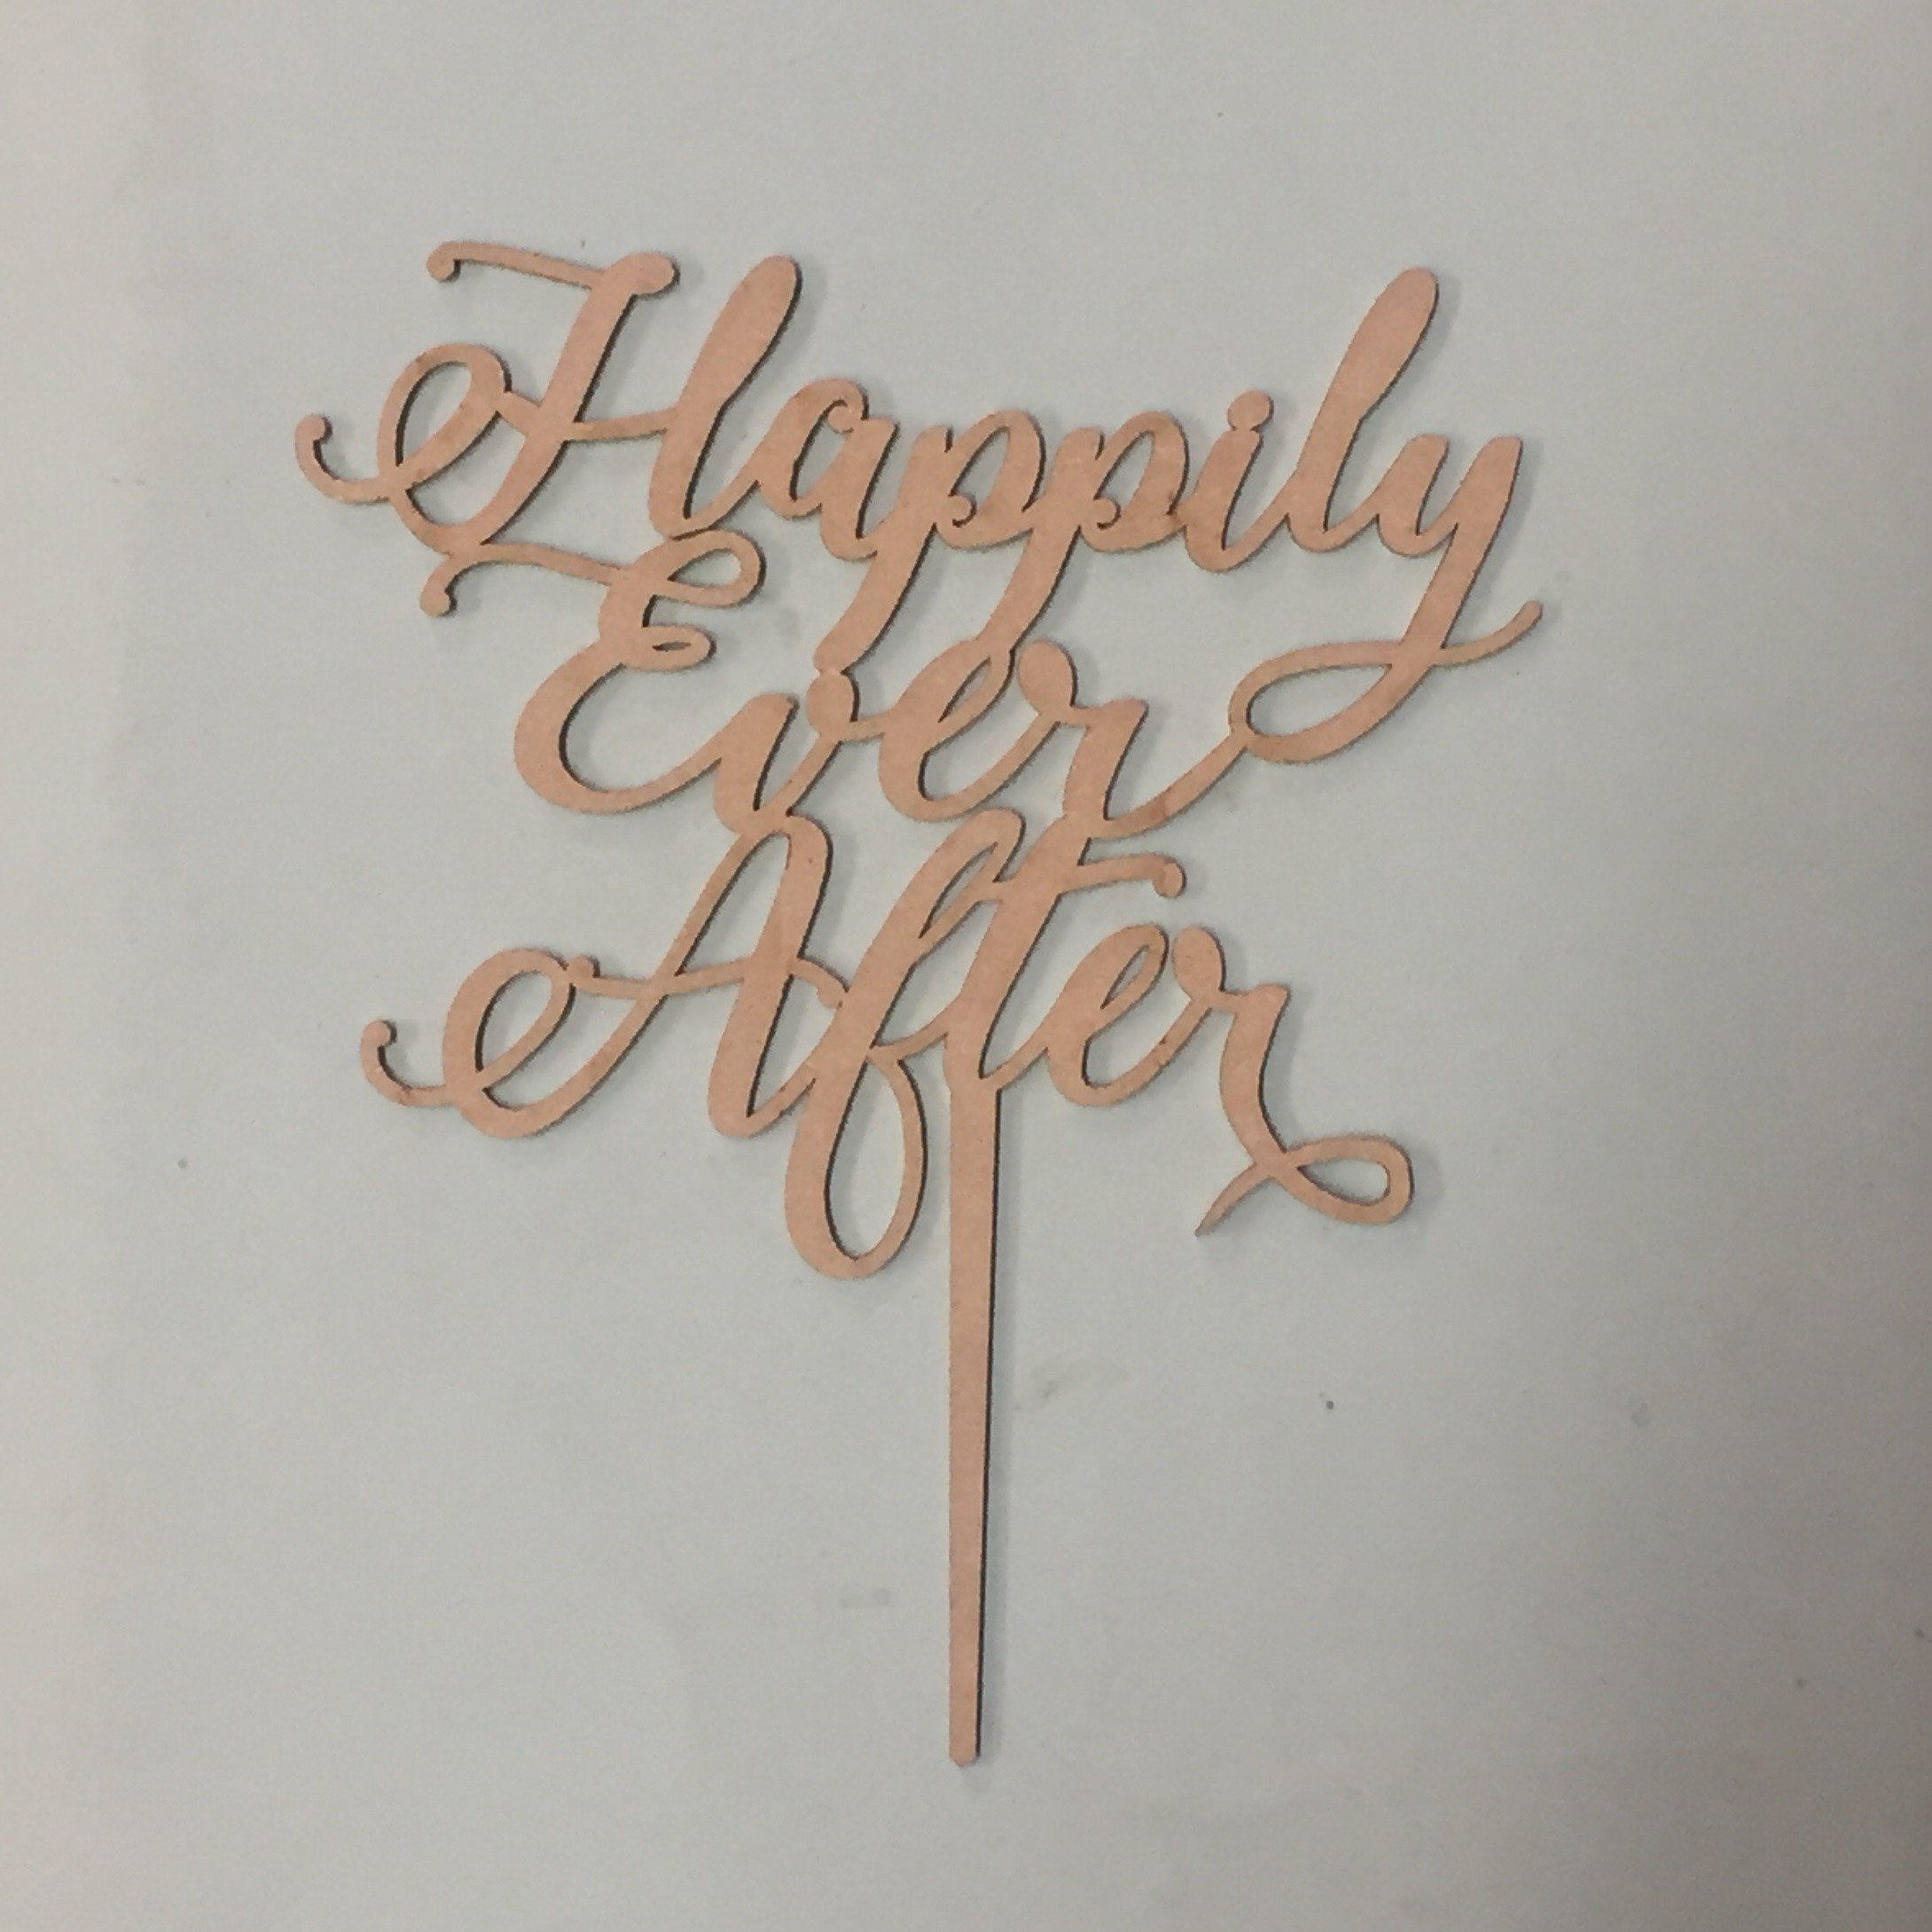 Happily Ever After Raw Mdf Cake Topper Dezign Worx